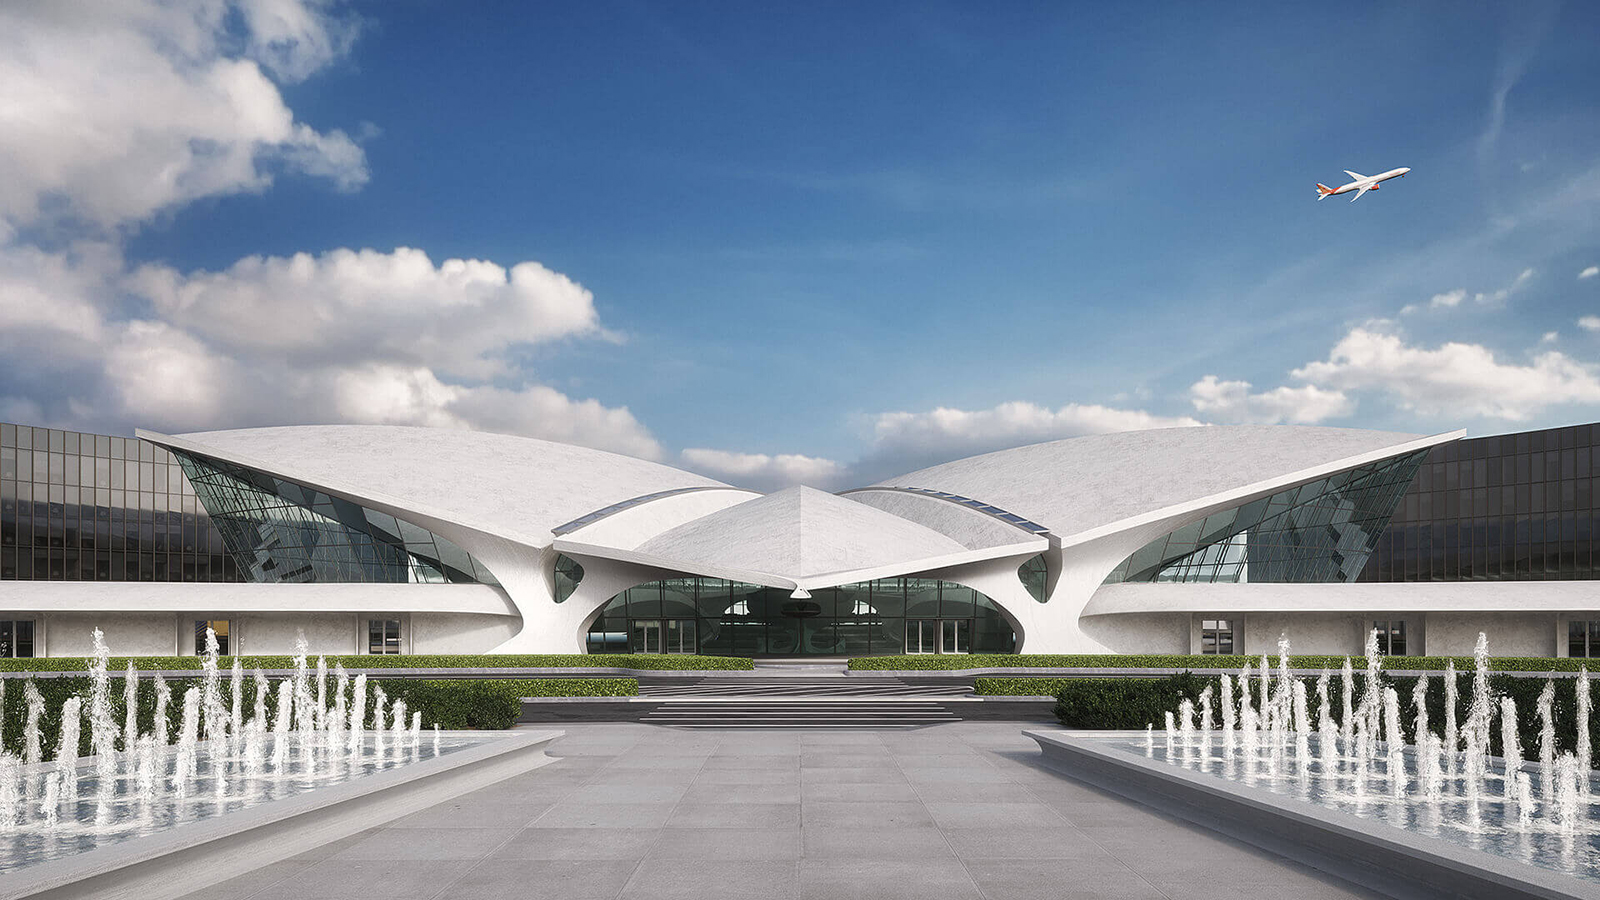 10 hotly anticipated hotels opening in 2019: TWA Flight Centre hotel at JFK Airport